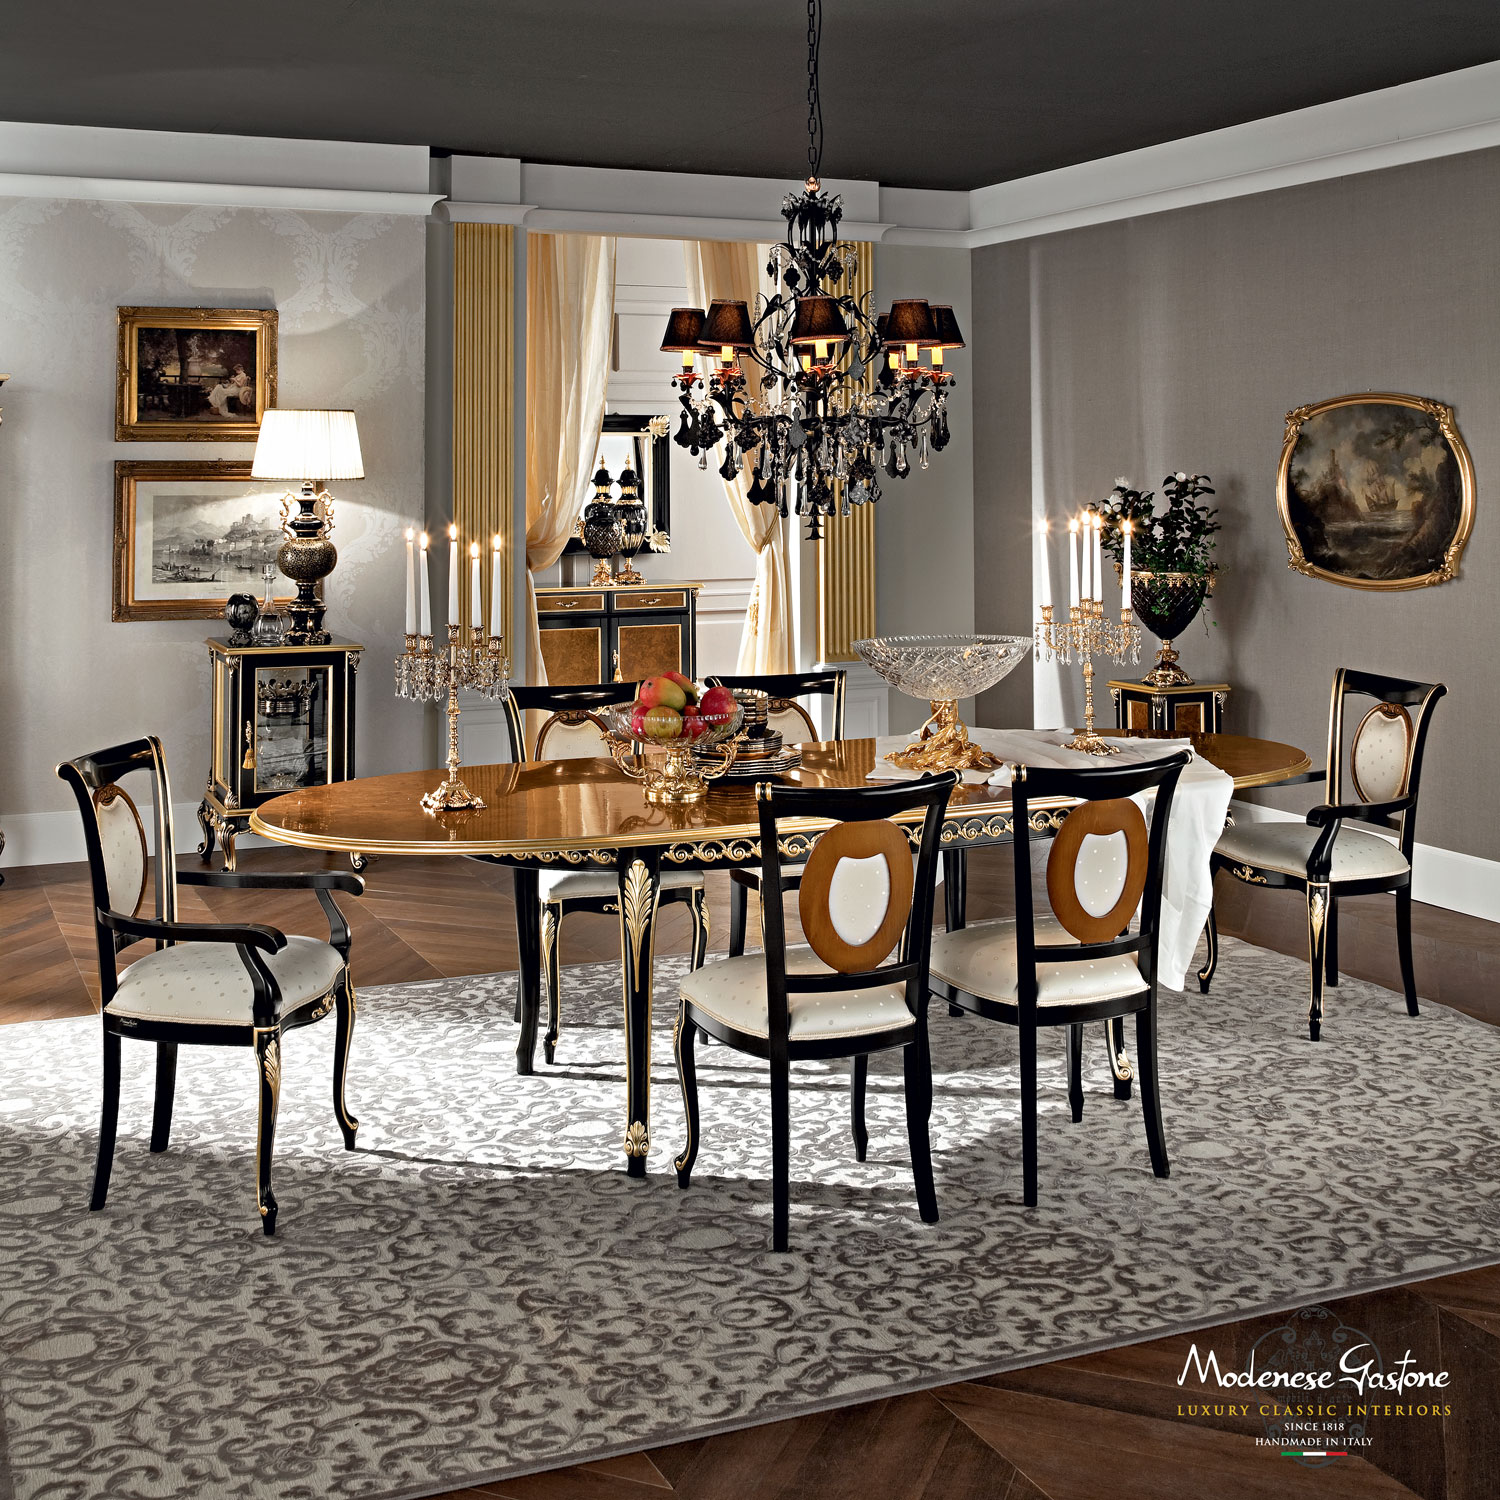 Classical-dining-room-with-extendable-hardwood-table-Casanova-collection-Modenese-Gastone